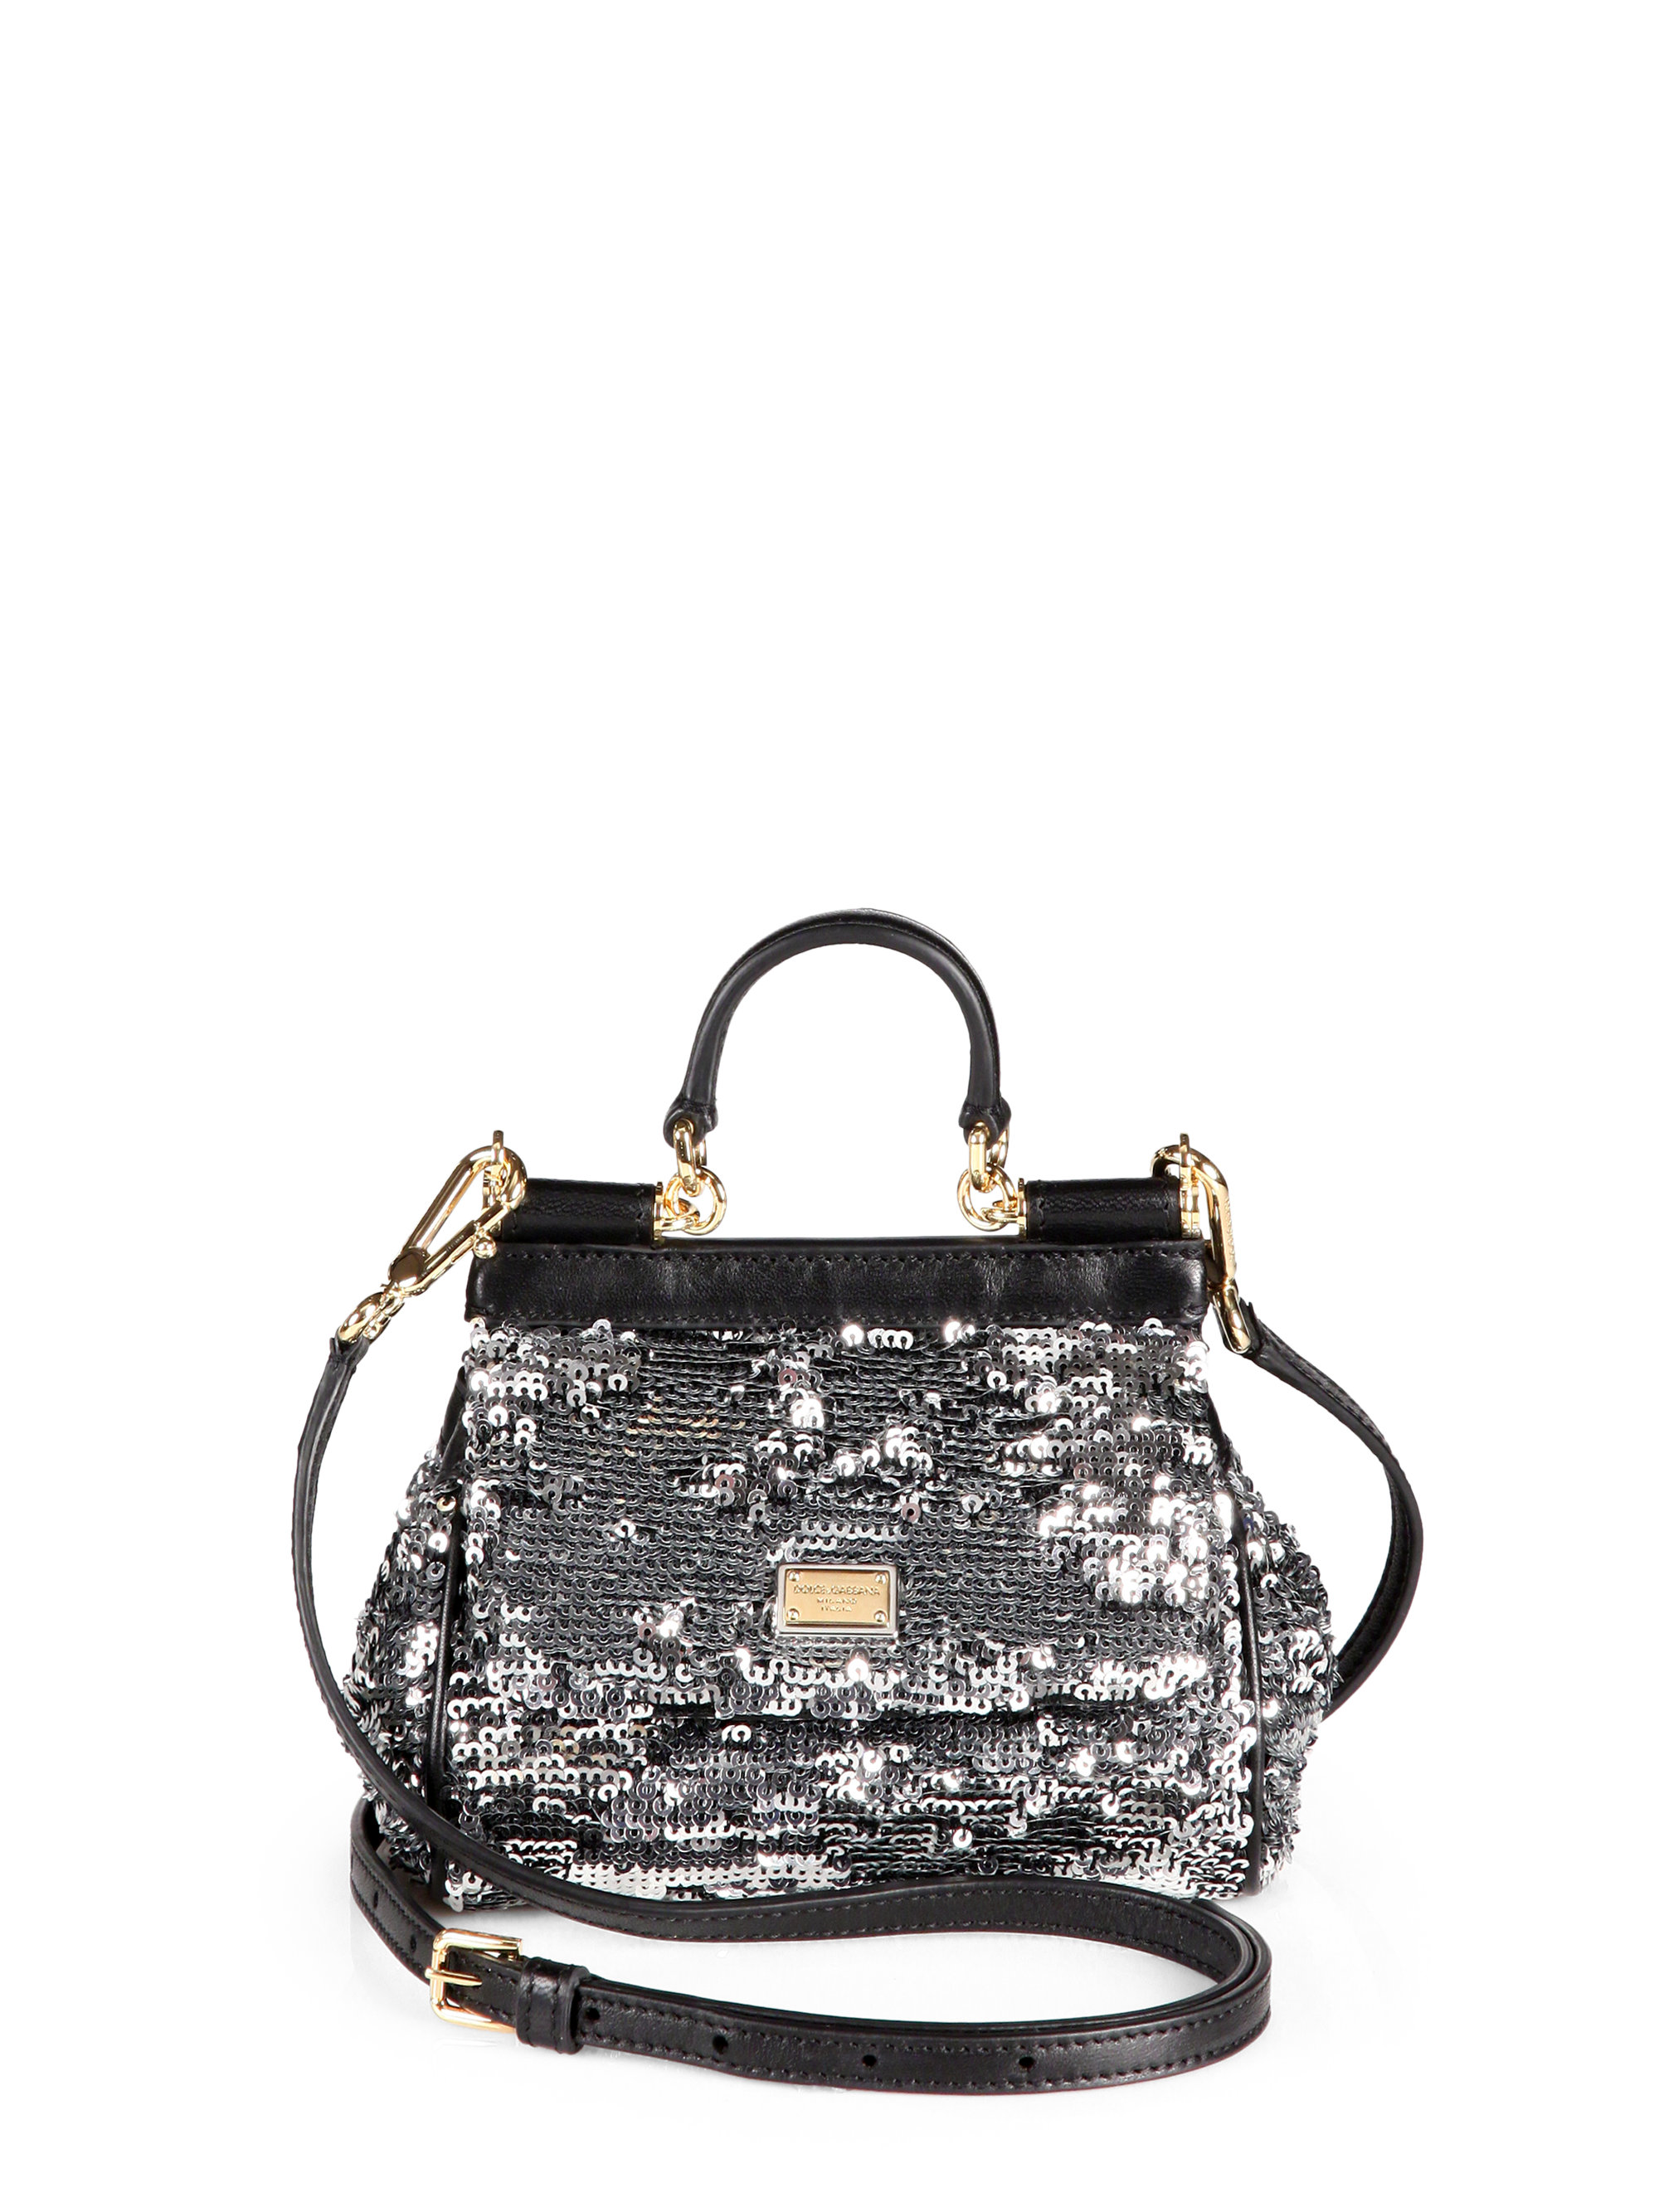 5417375eace6 Lyst - Dolce   Gabbana Mini Miss Sicily Sequined Satchel in Metallic